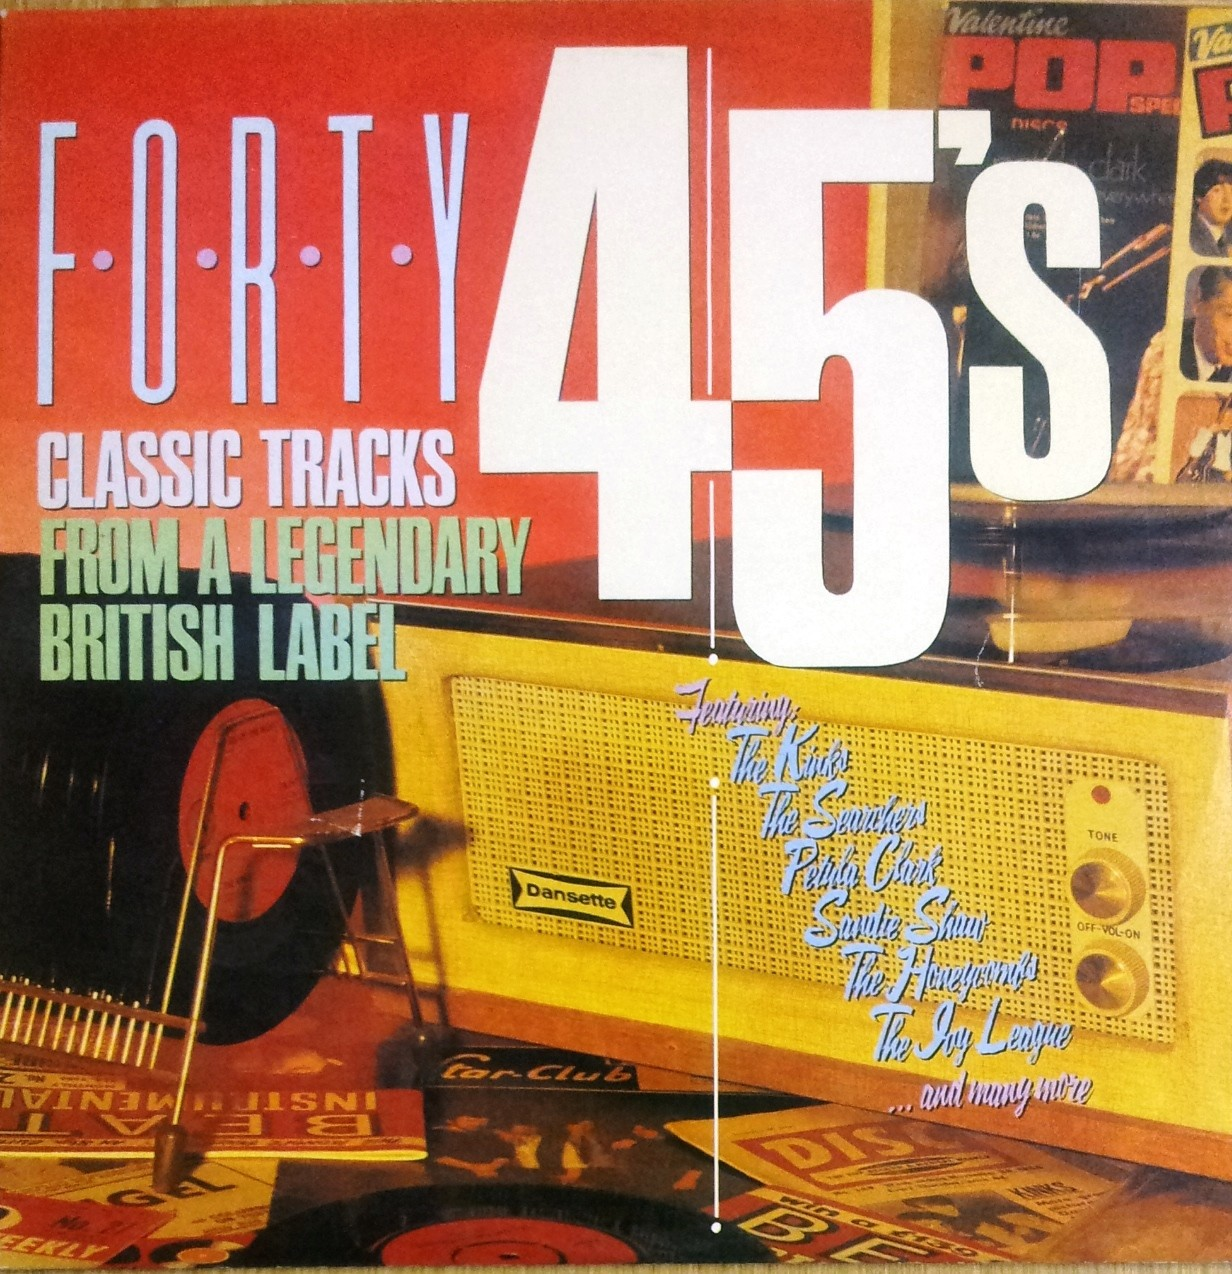 Various Artists - Forty 45s - Classic Tracks From A Legendary British Label Kinks/searchers Etc